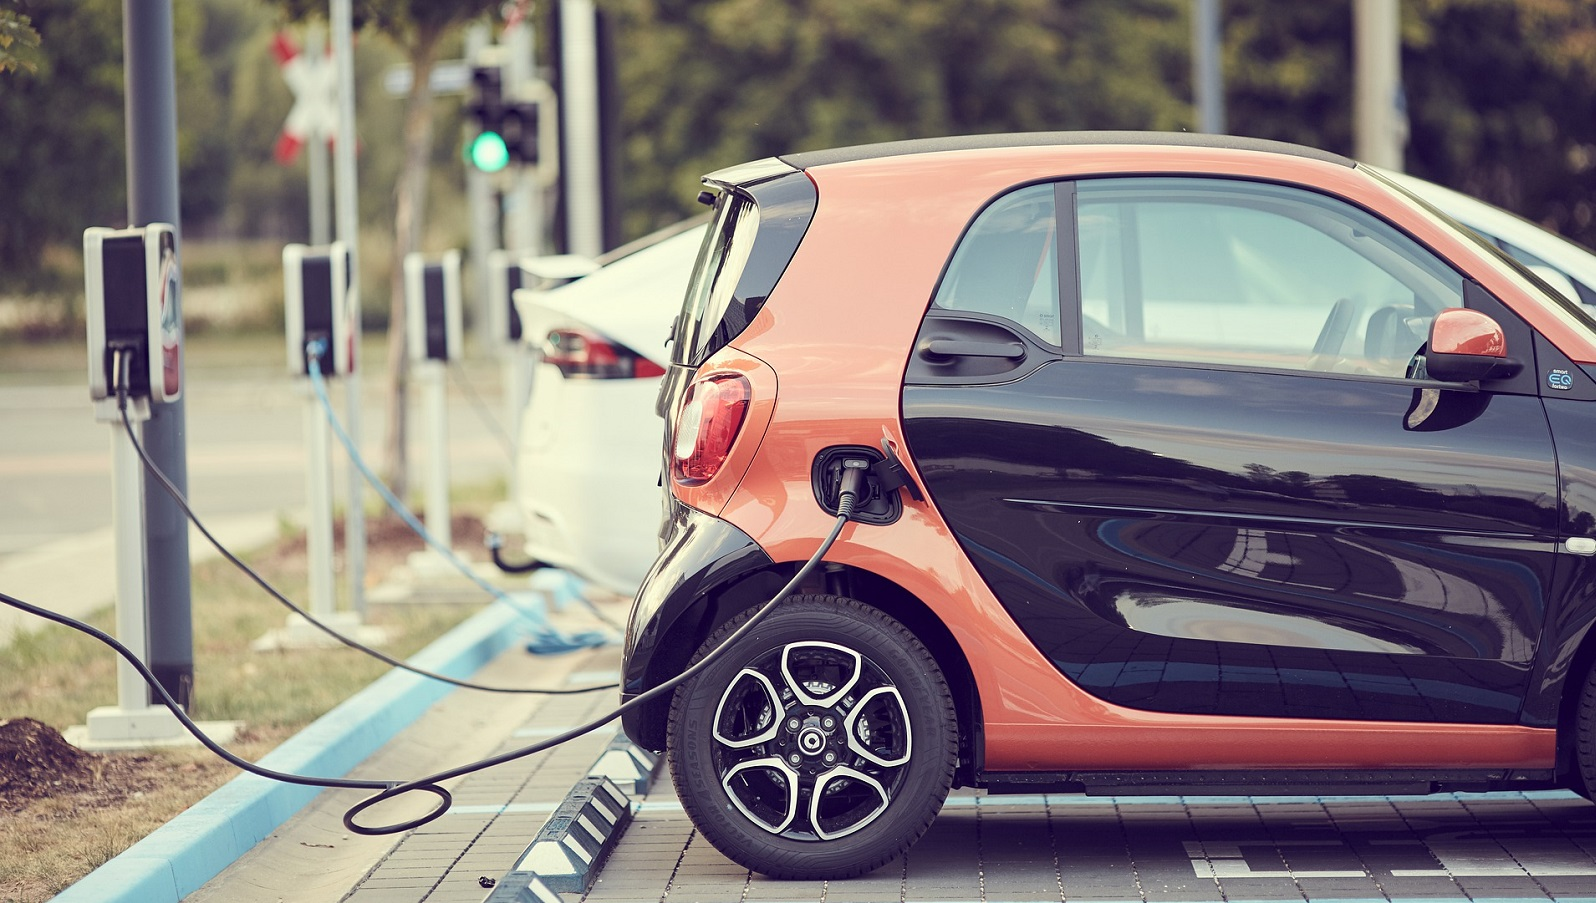 SA's uYilo Electric Mobility Programme in call for startup to apply grants of up to R1m - Ventureburn